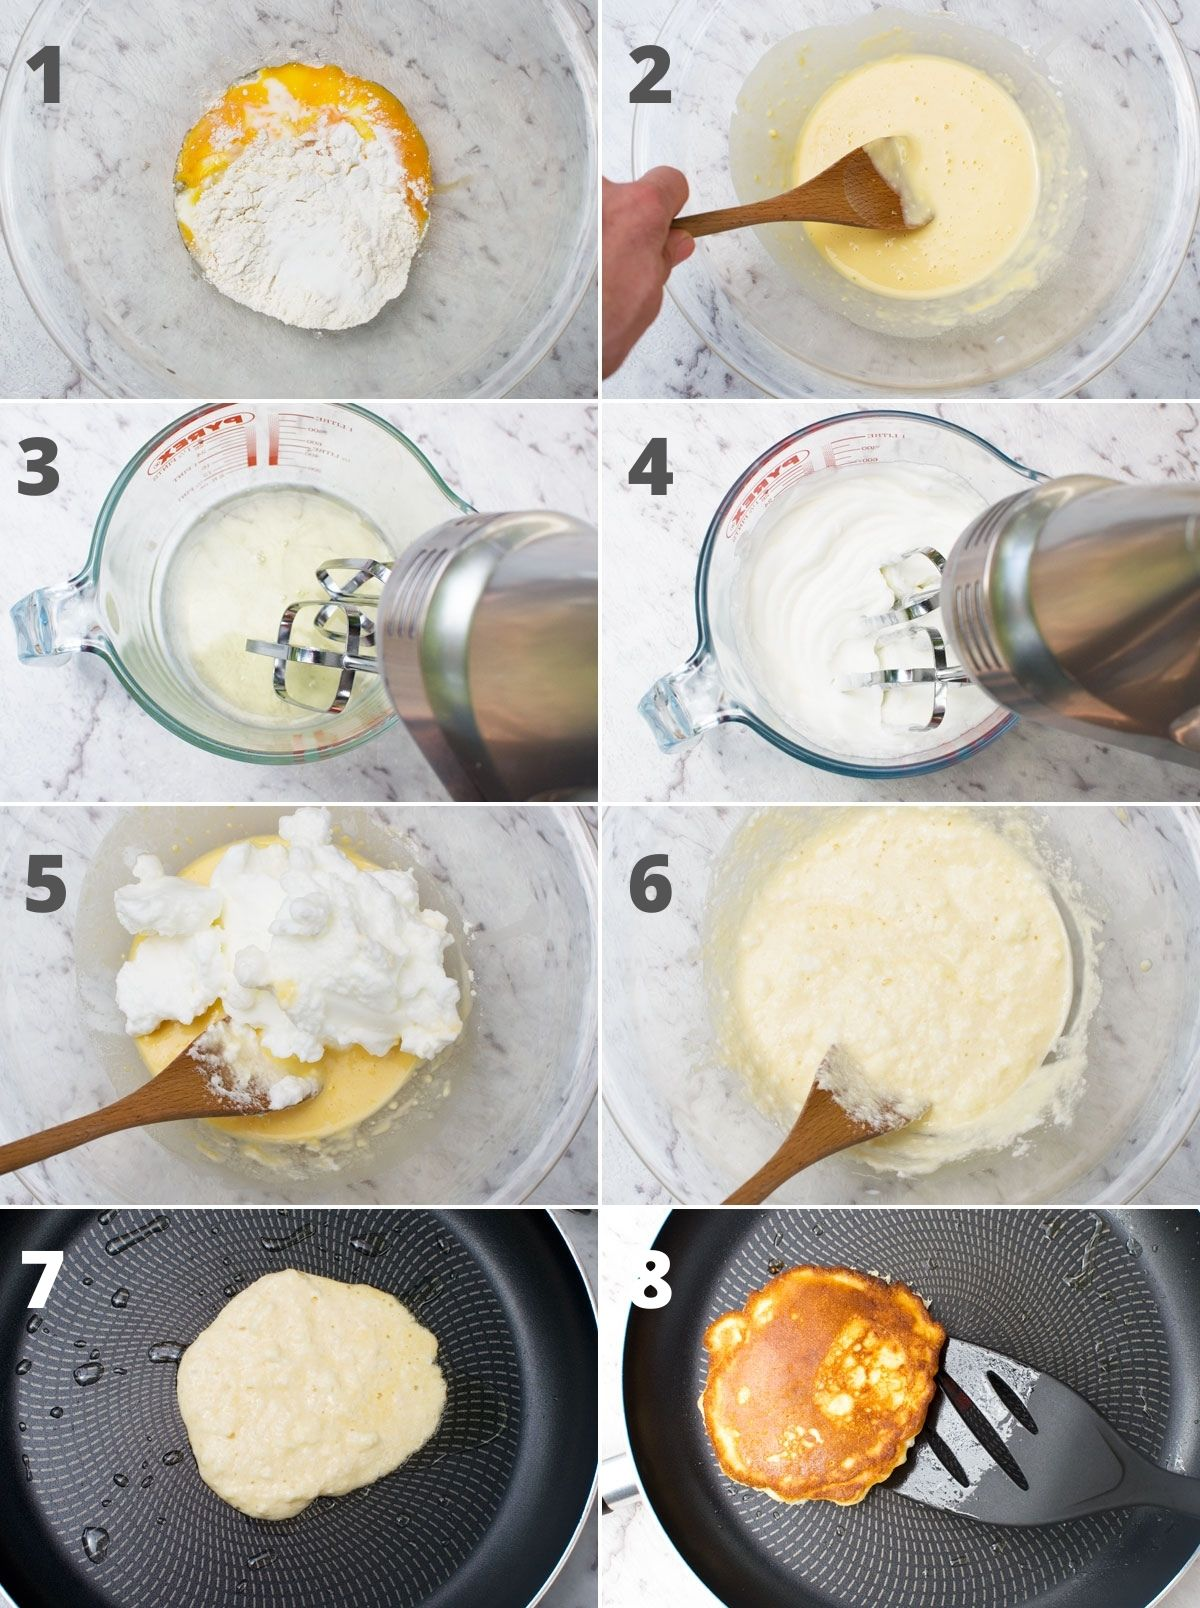 8 small images showing the steps to making the batter for banana pancakes. The main difference to regular pancakes is whisking egg whites to add to the batter.